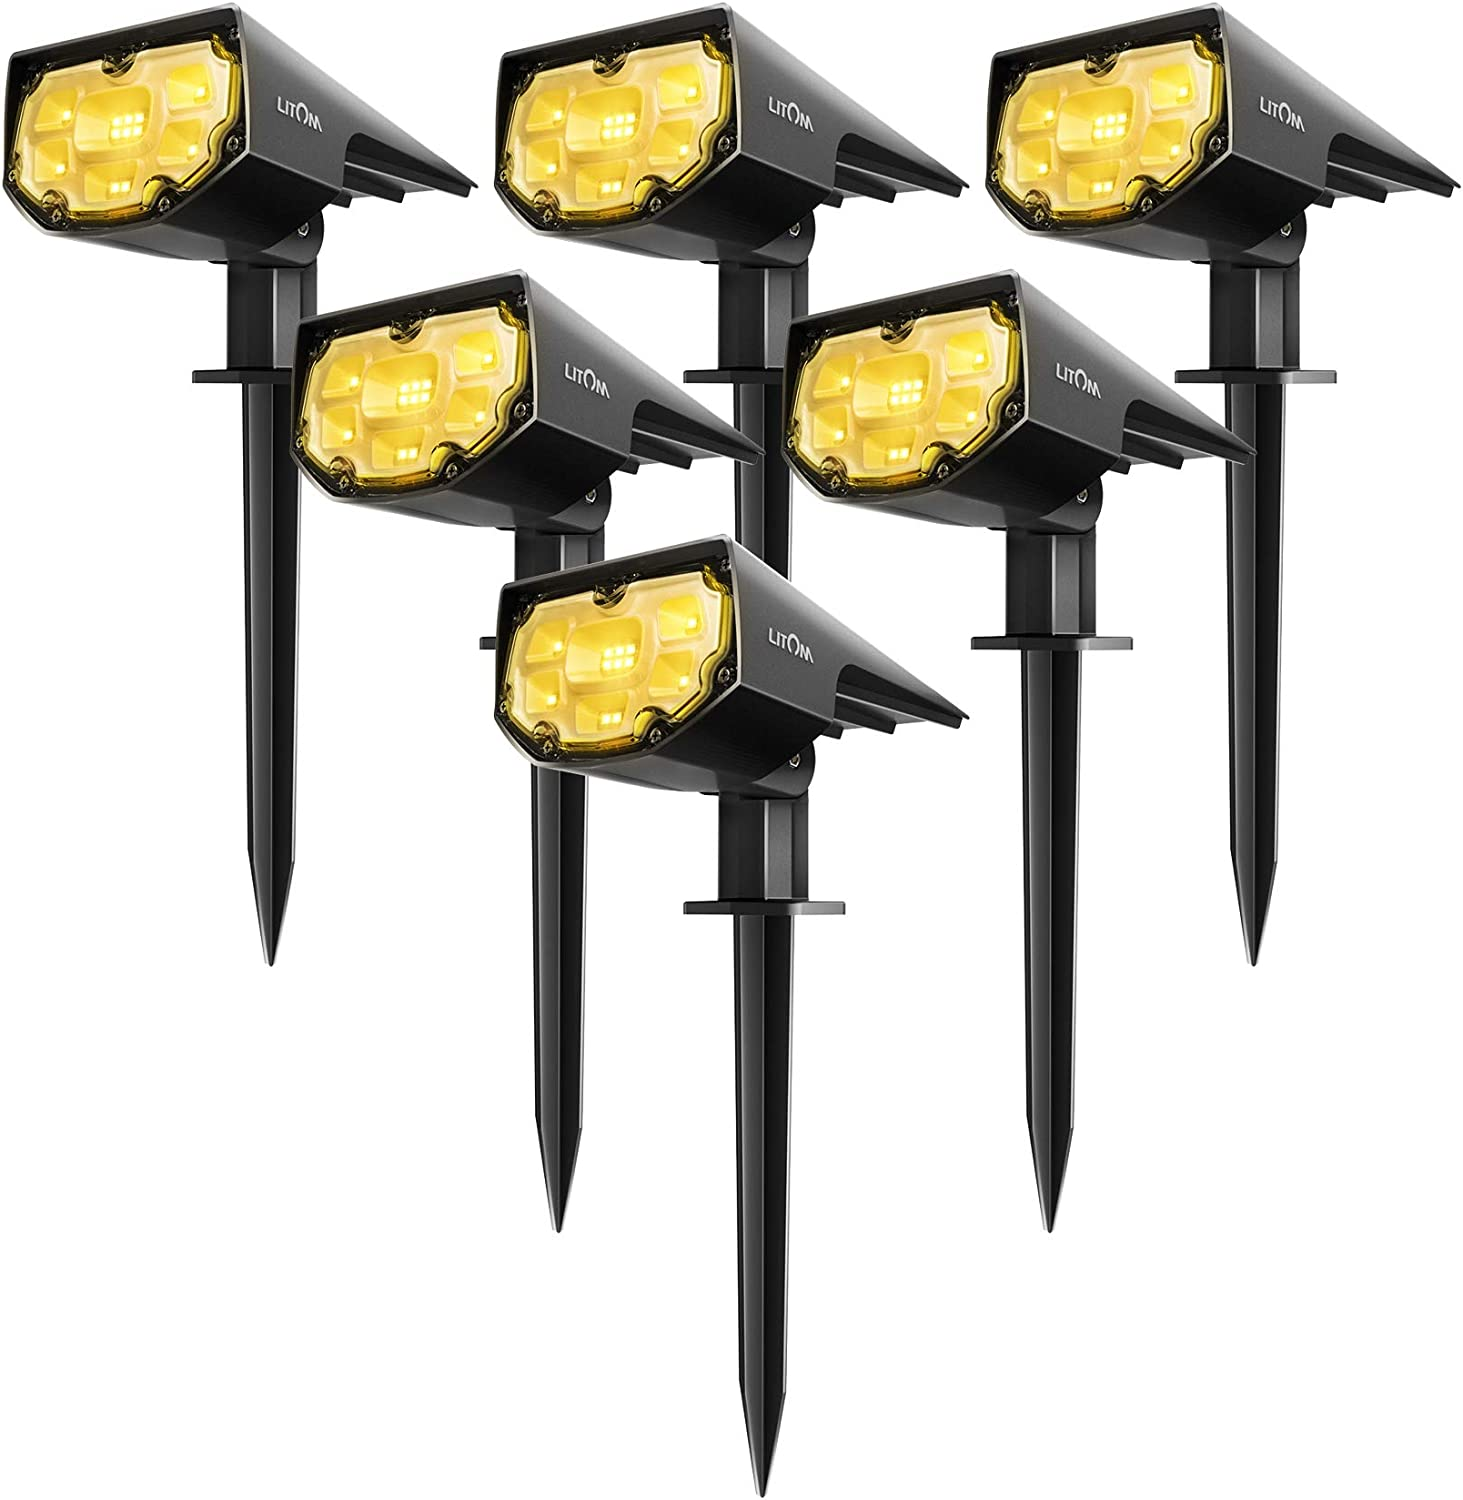 LITOM 12 LEDs Solar Landscape Spotlights, IP67 Waterproof Solar Powered Wall Lights 2-in-1 Wireless Outdoor Solar Landscaping Light for Yard Garden Driveway Porch Walkway Pool Patio 6 Pack Warm White